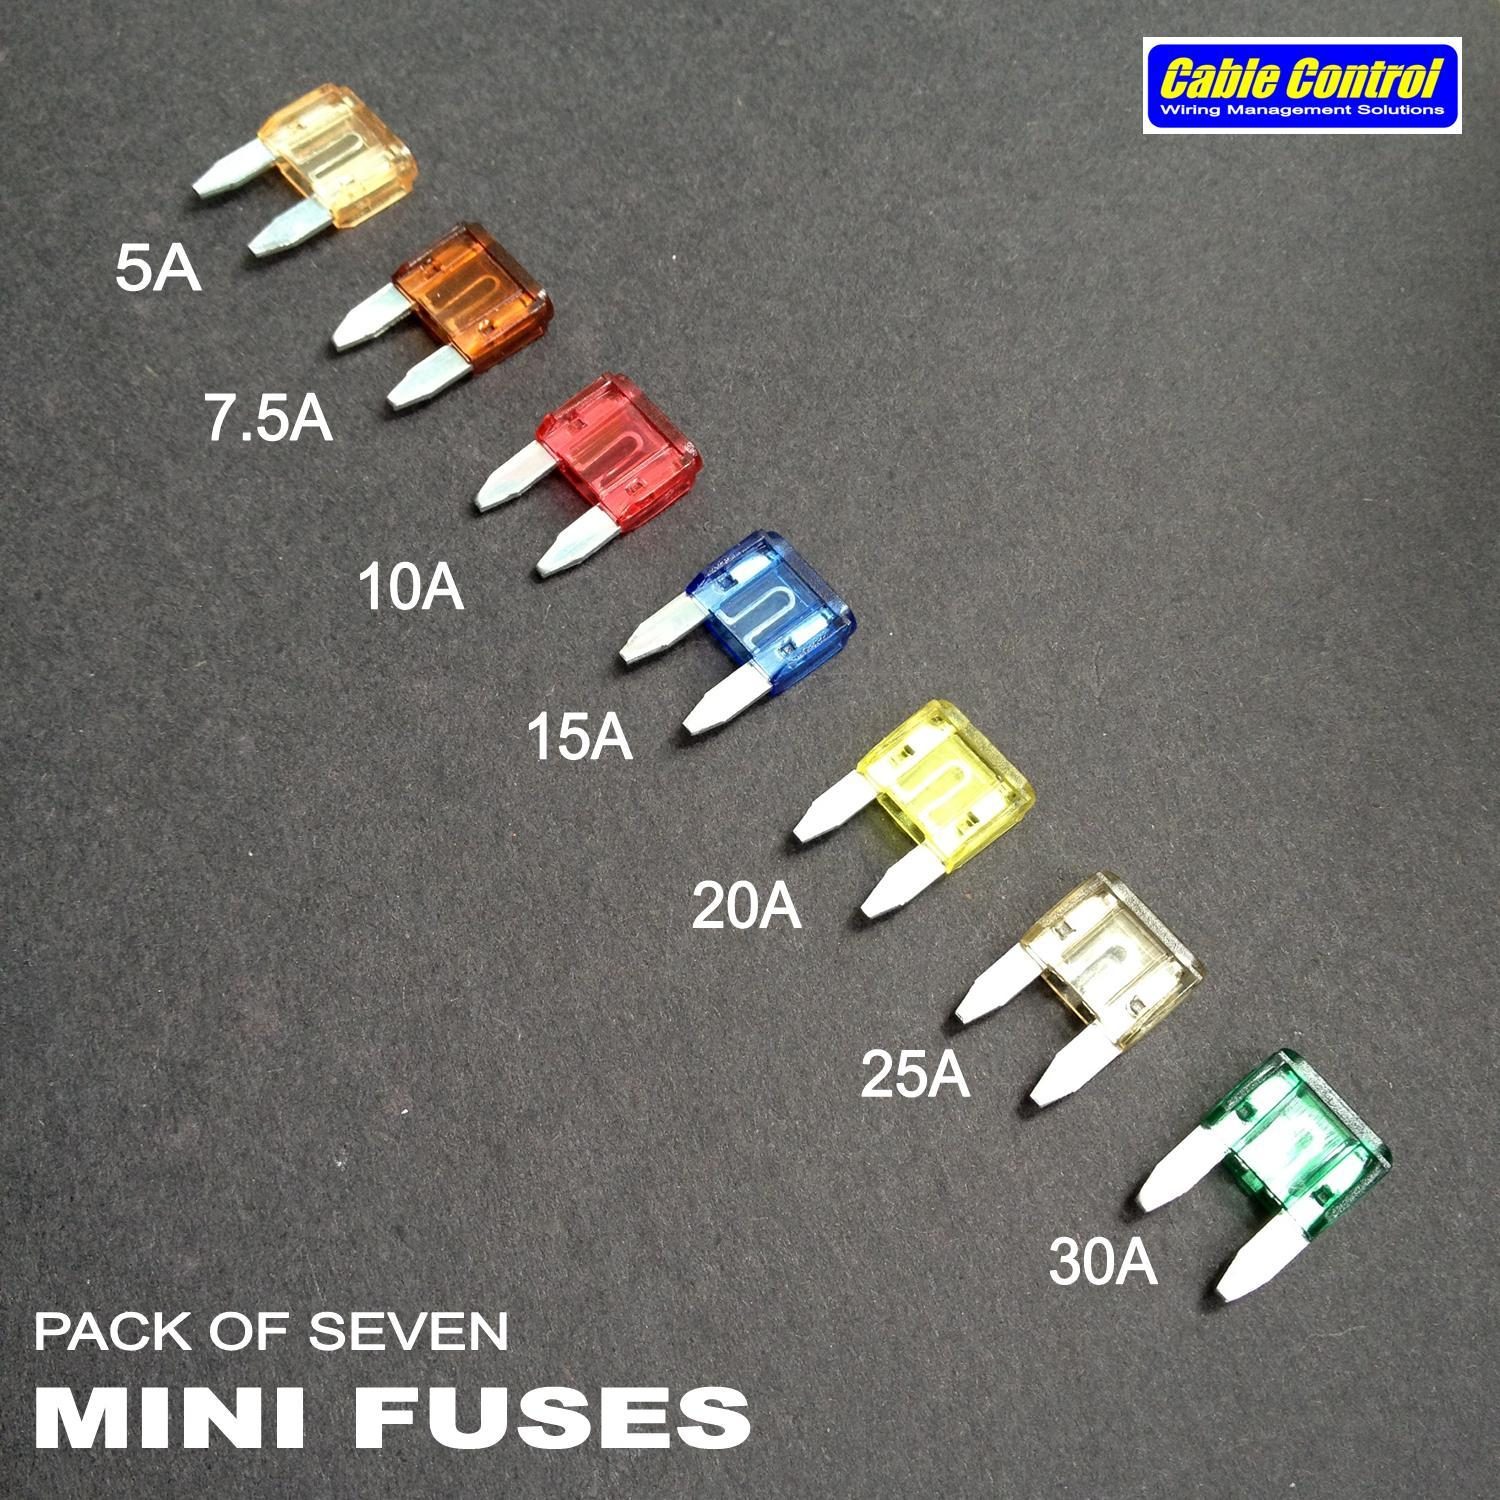 Cable Control Philippines Price List Sleeves Wiring Loom Labels Fuse For Mini Set Of 7